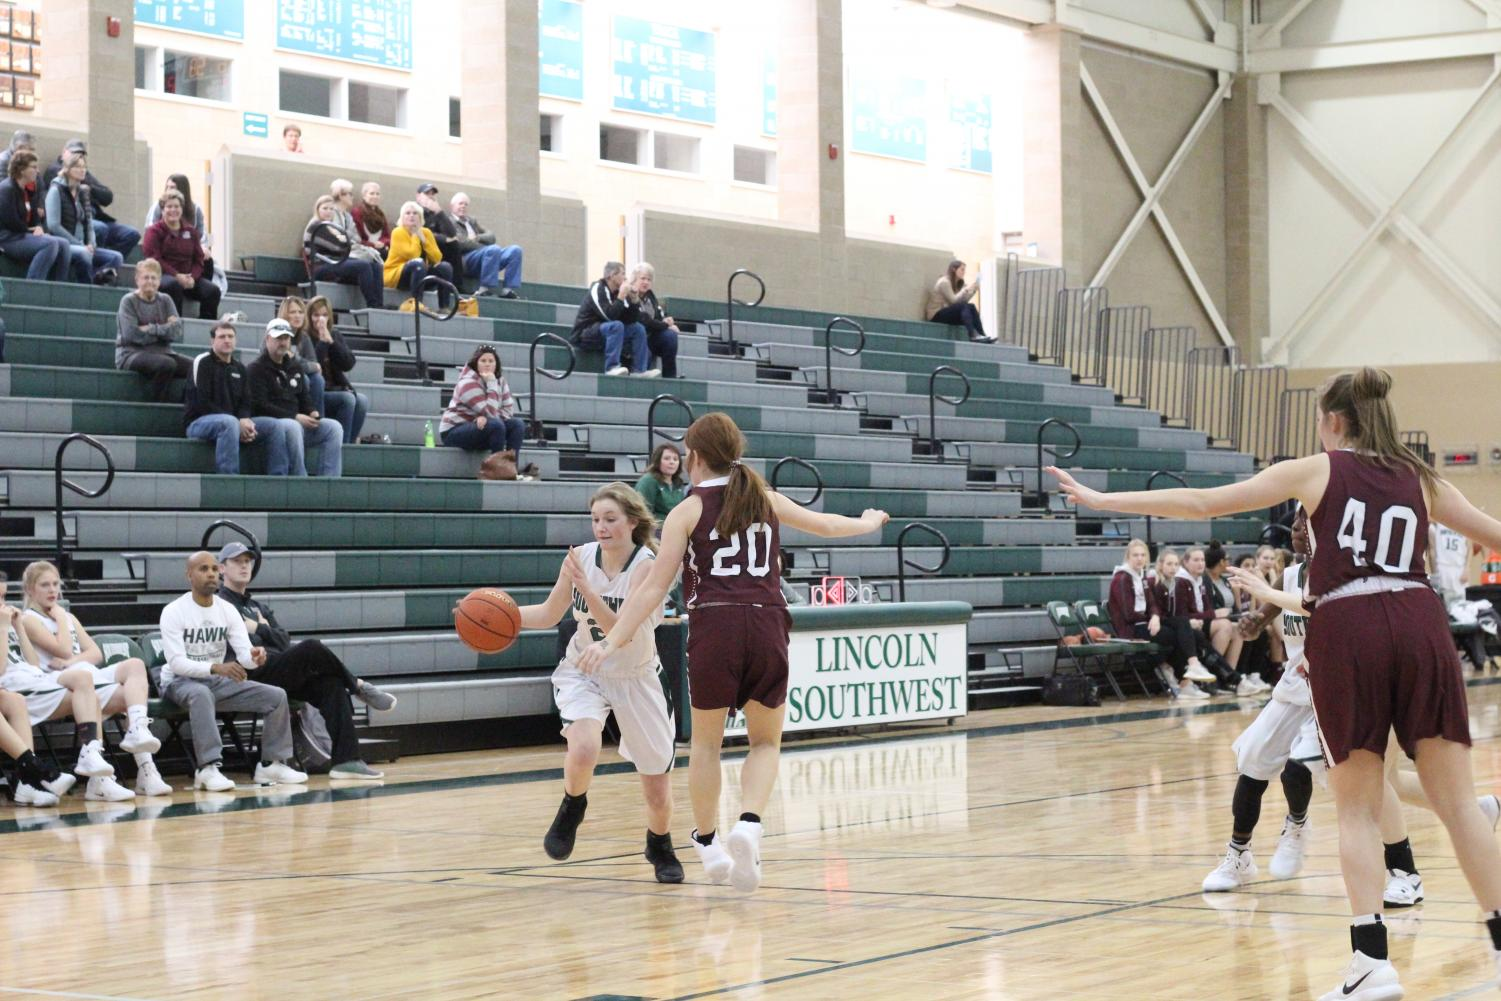 Freshmen girls basketball lost to Norfolk 45-30 this past weekend.